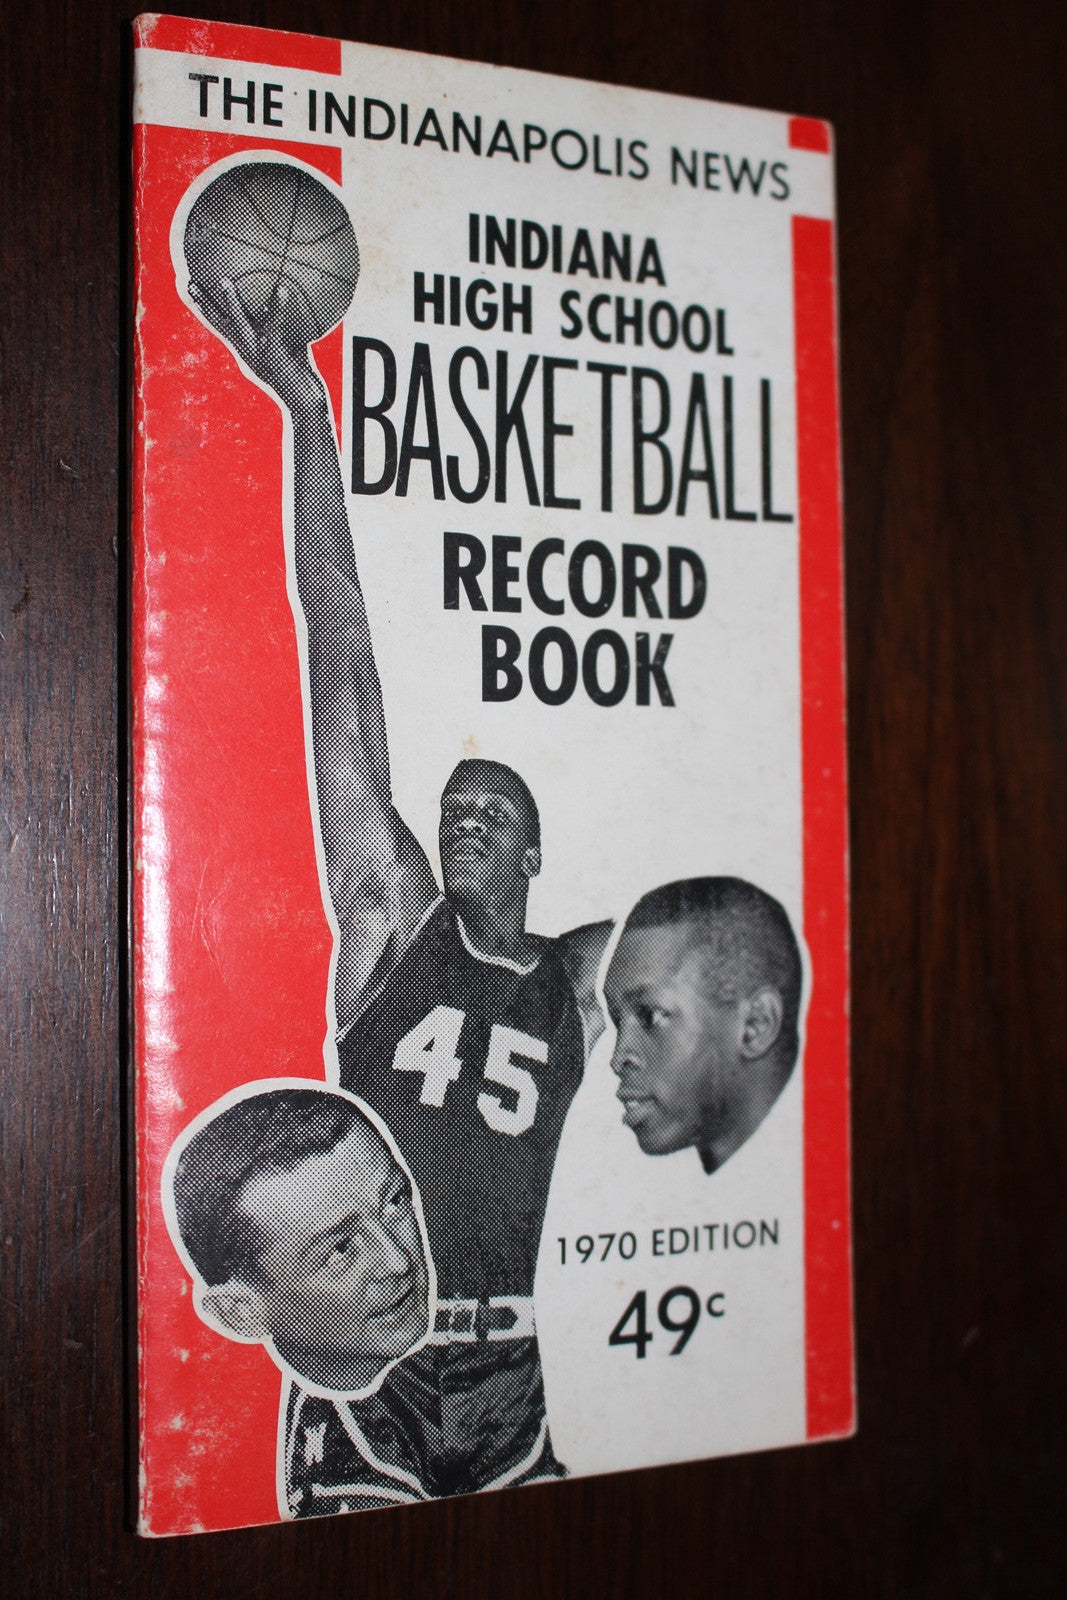 1970 Indianapolis News Basketball Record Book - Vintage Indy Sports